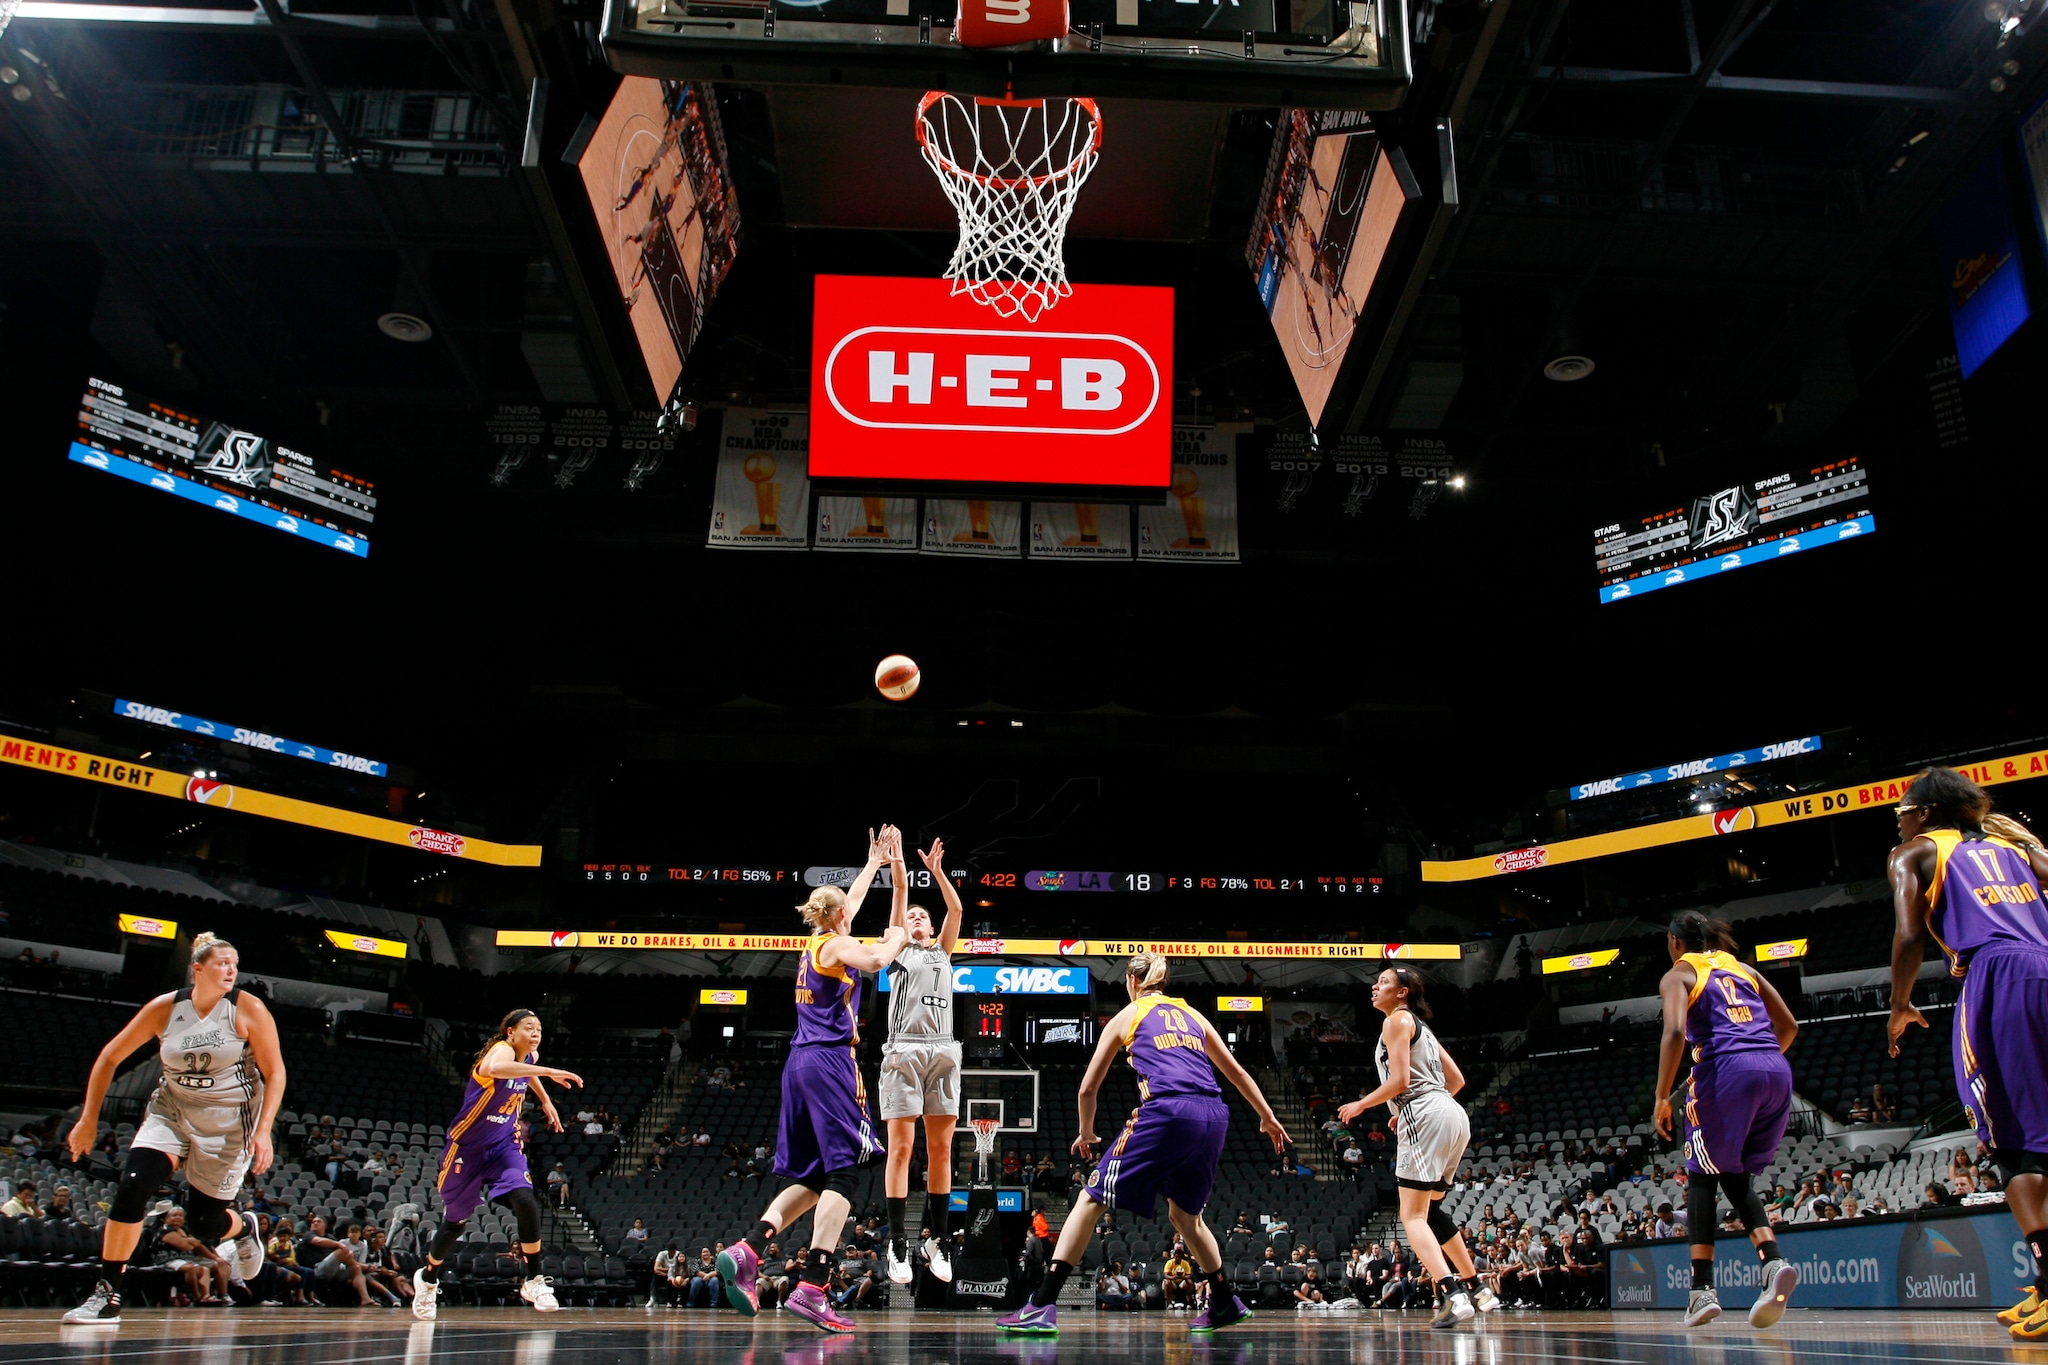 SAN ANTONIO, TX - MAY 9:  Haley Peters #7 of the San Antonio Stars shoots the ball Los Angeles Sparks on May 9, 2016 at the AT&T Center in San Antonio, Texas. NOTE TO USER: User expressly acknowledges and agrees that, by downloading and or using this photograph, user is consenting to the terms and conditions of the Getty Images License Agreement. Mandatory Copyright Notice: Copyright 2016 NBAE (Photos by Chris Covatta/NBAE via Getty Images)